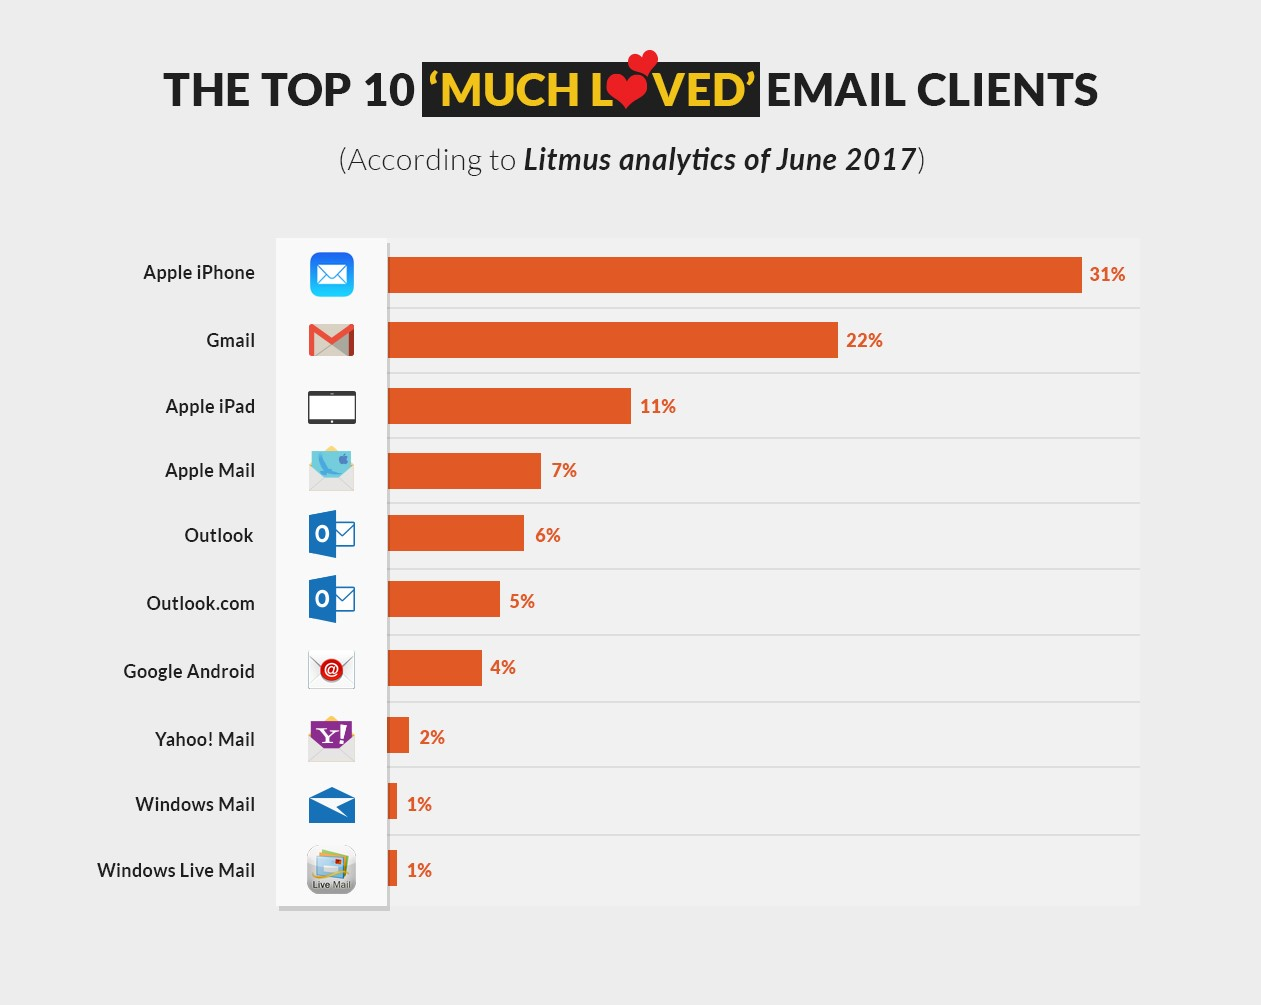 Most popular email clients by users by Lirmus